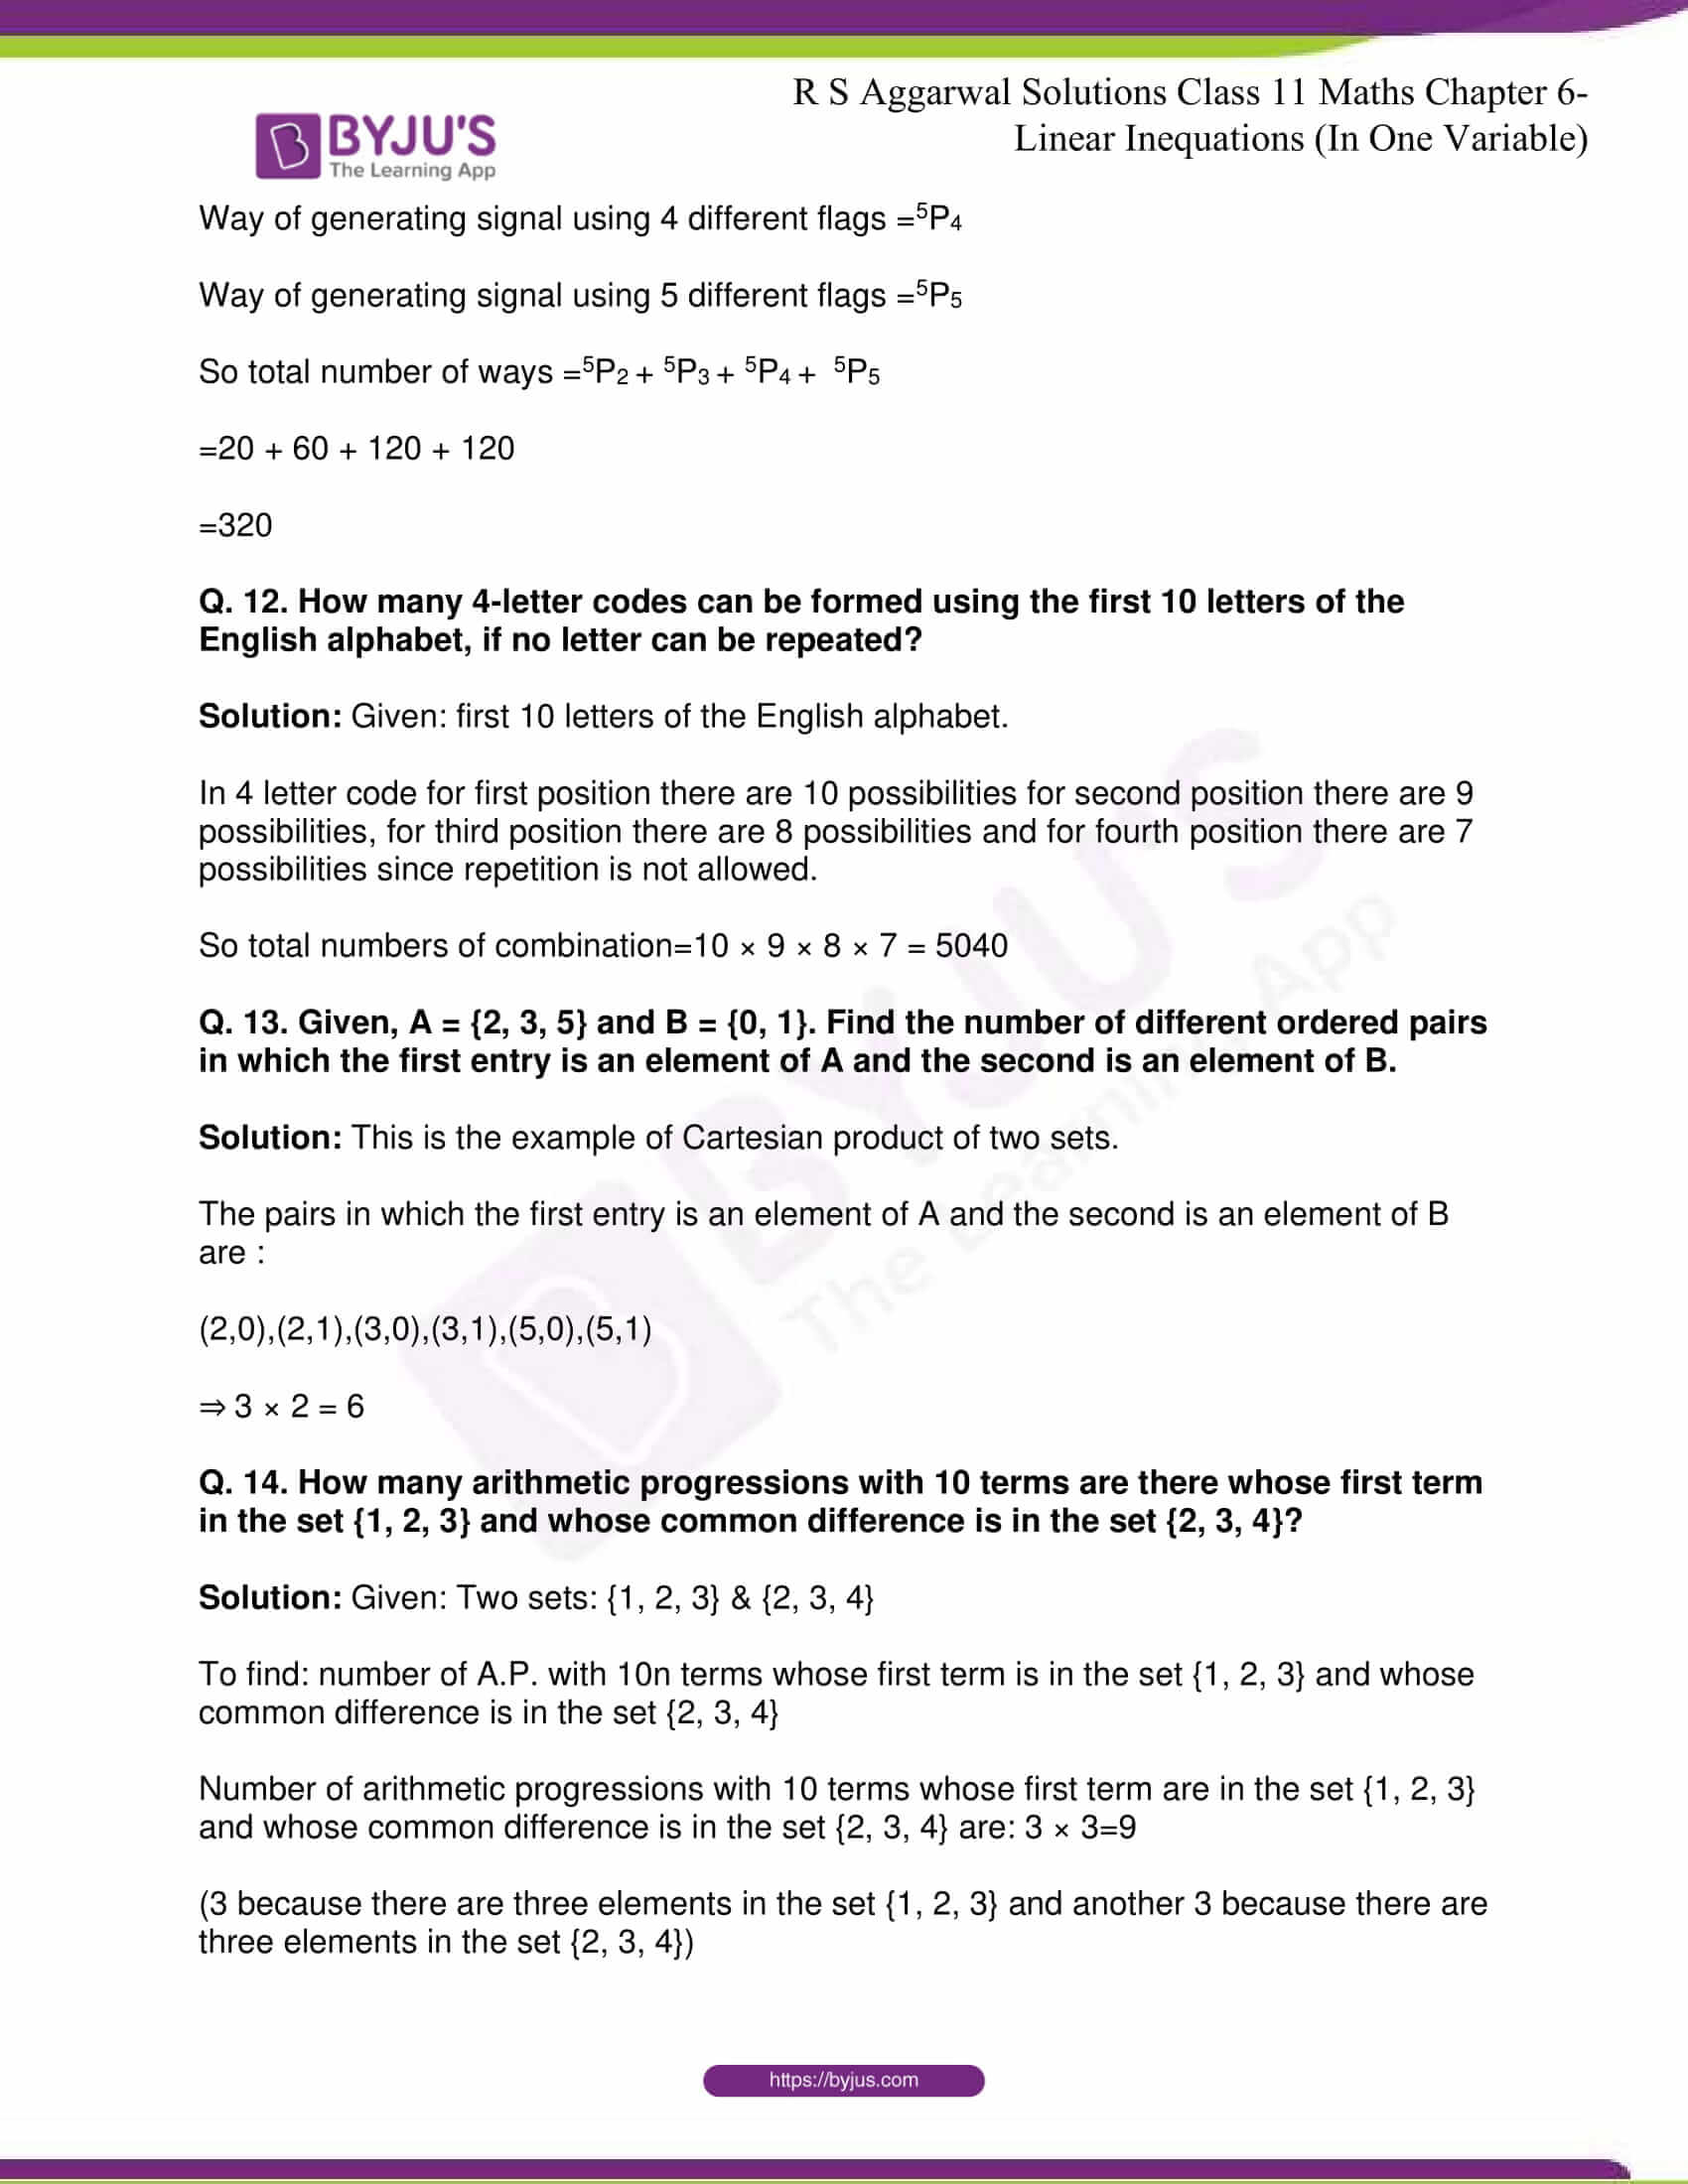 RS Aggarwal Sol Class 11 Maths Chapter 8